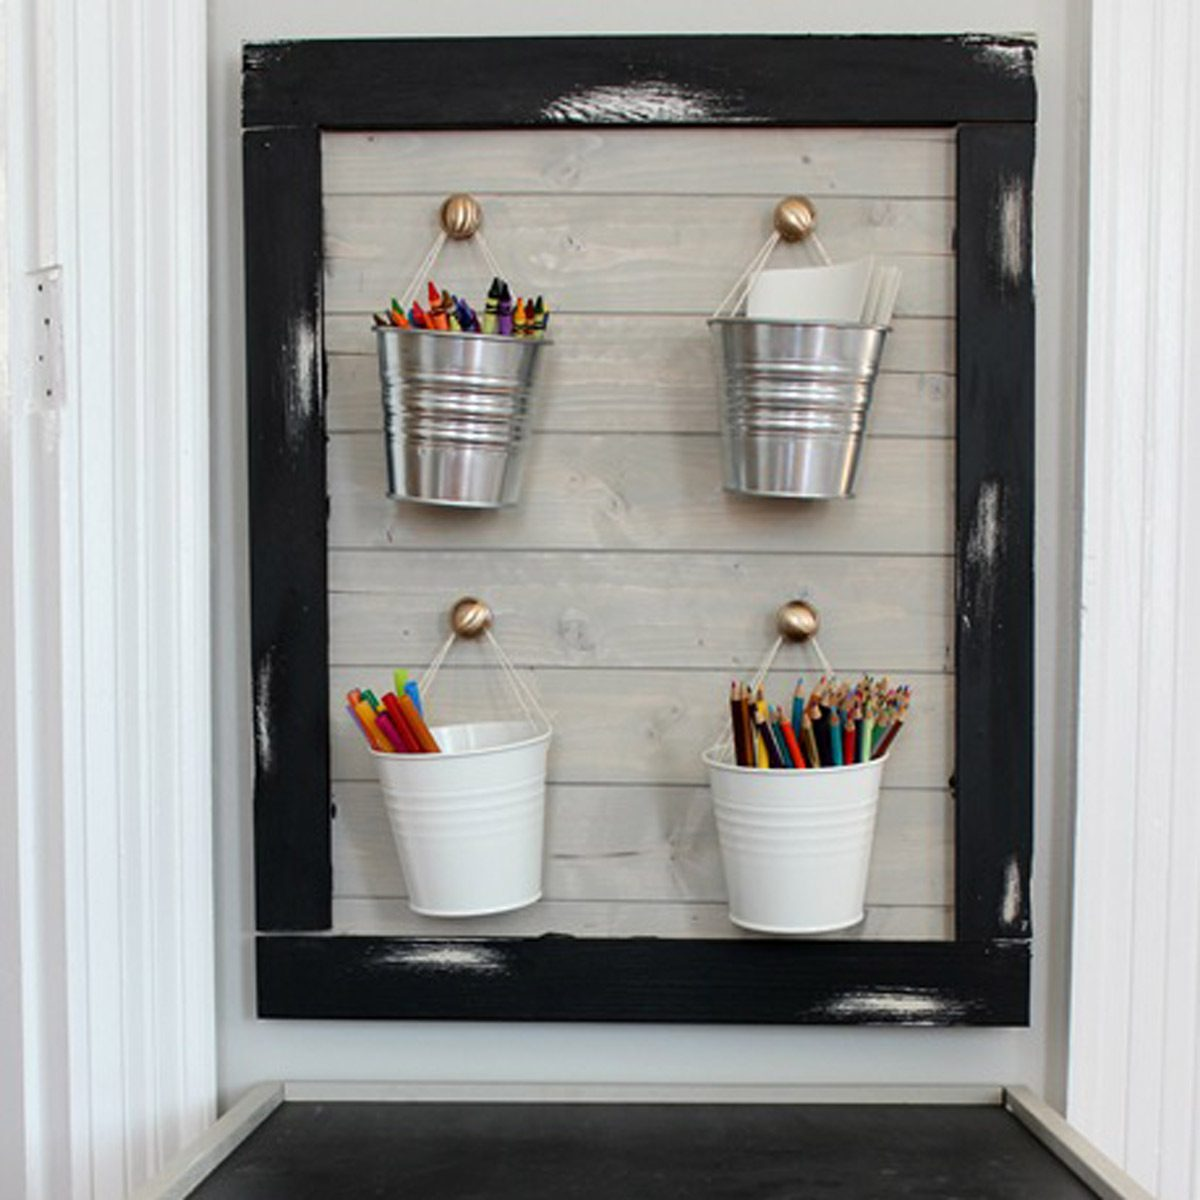 Kids-Art-Station_thumb Hang Galvanized Pails school supplies crafts organization storage